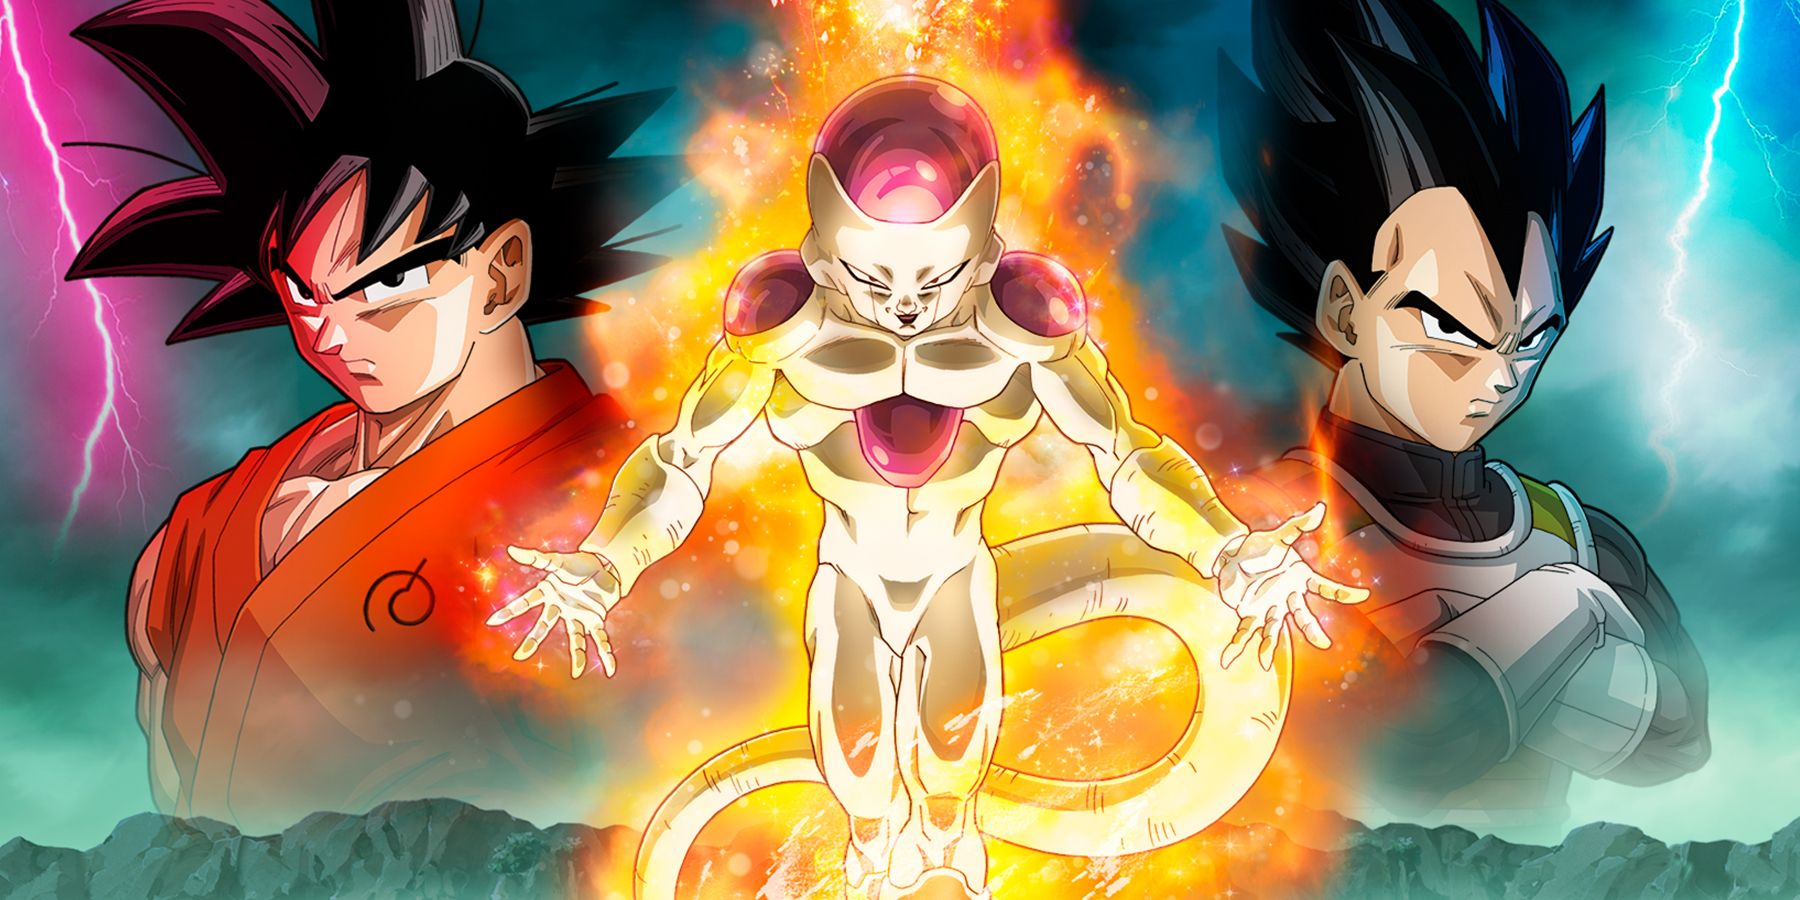 Dragon Ball All Movies And Specials Officially Ranked Cbr